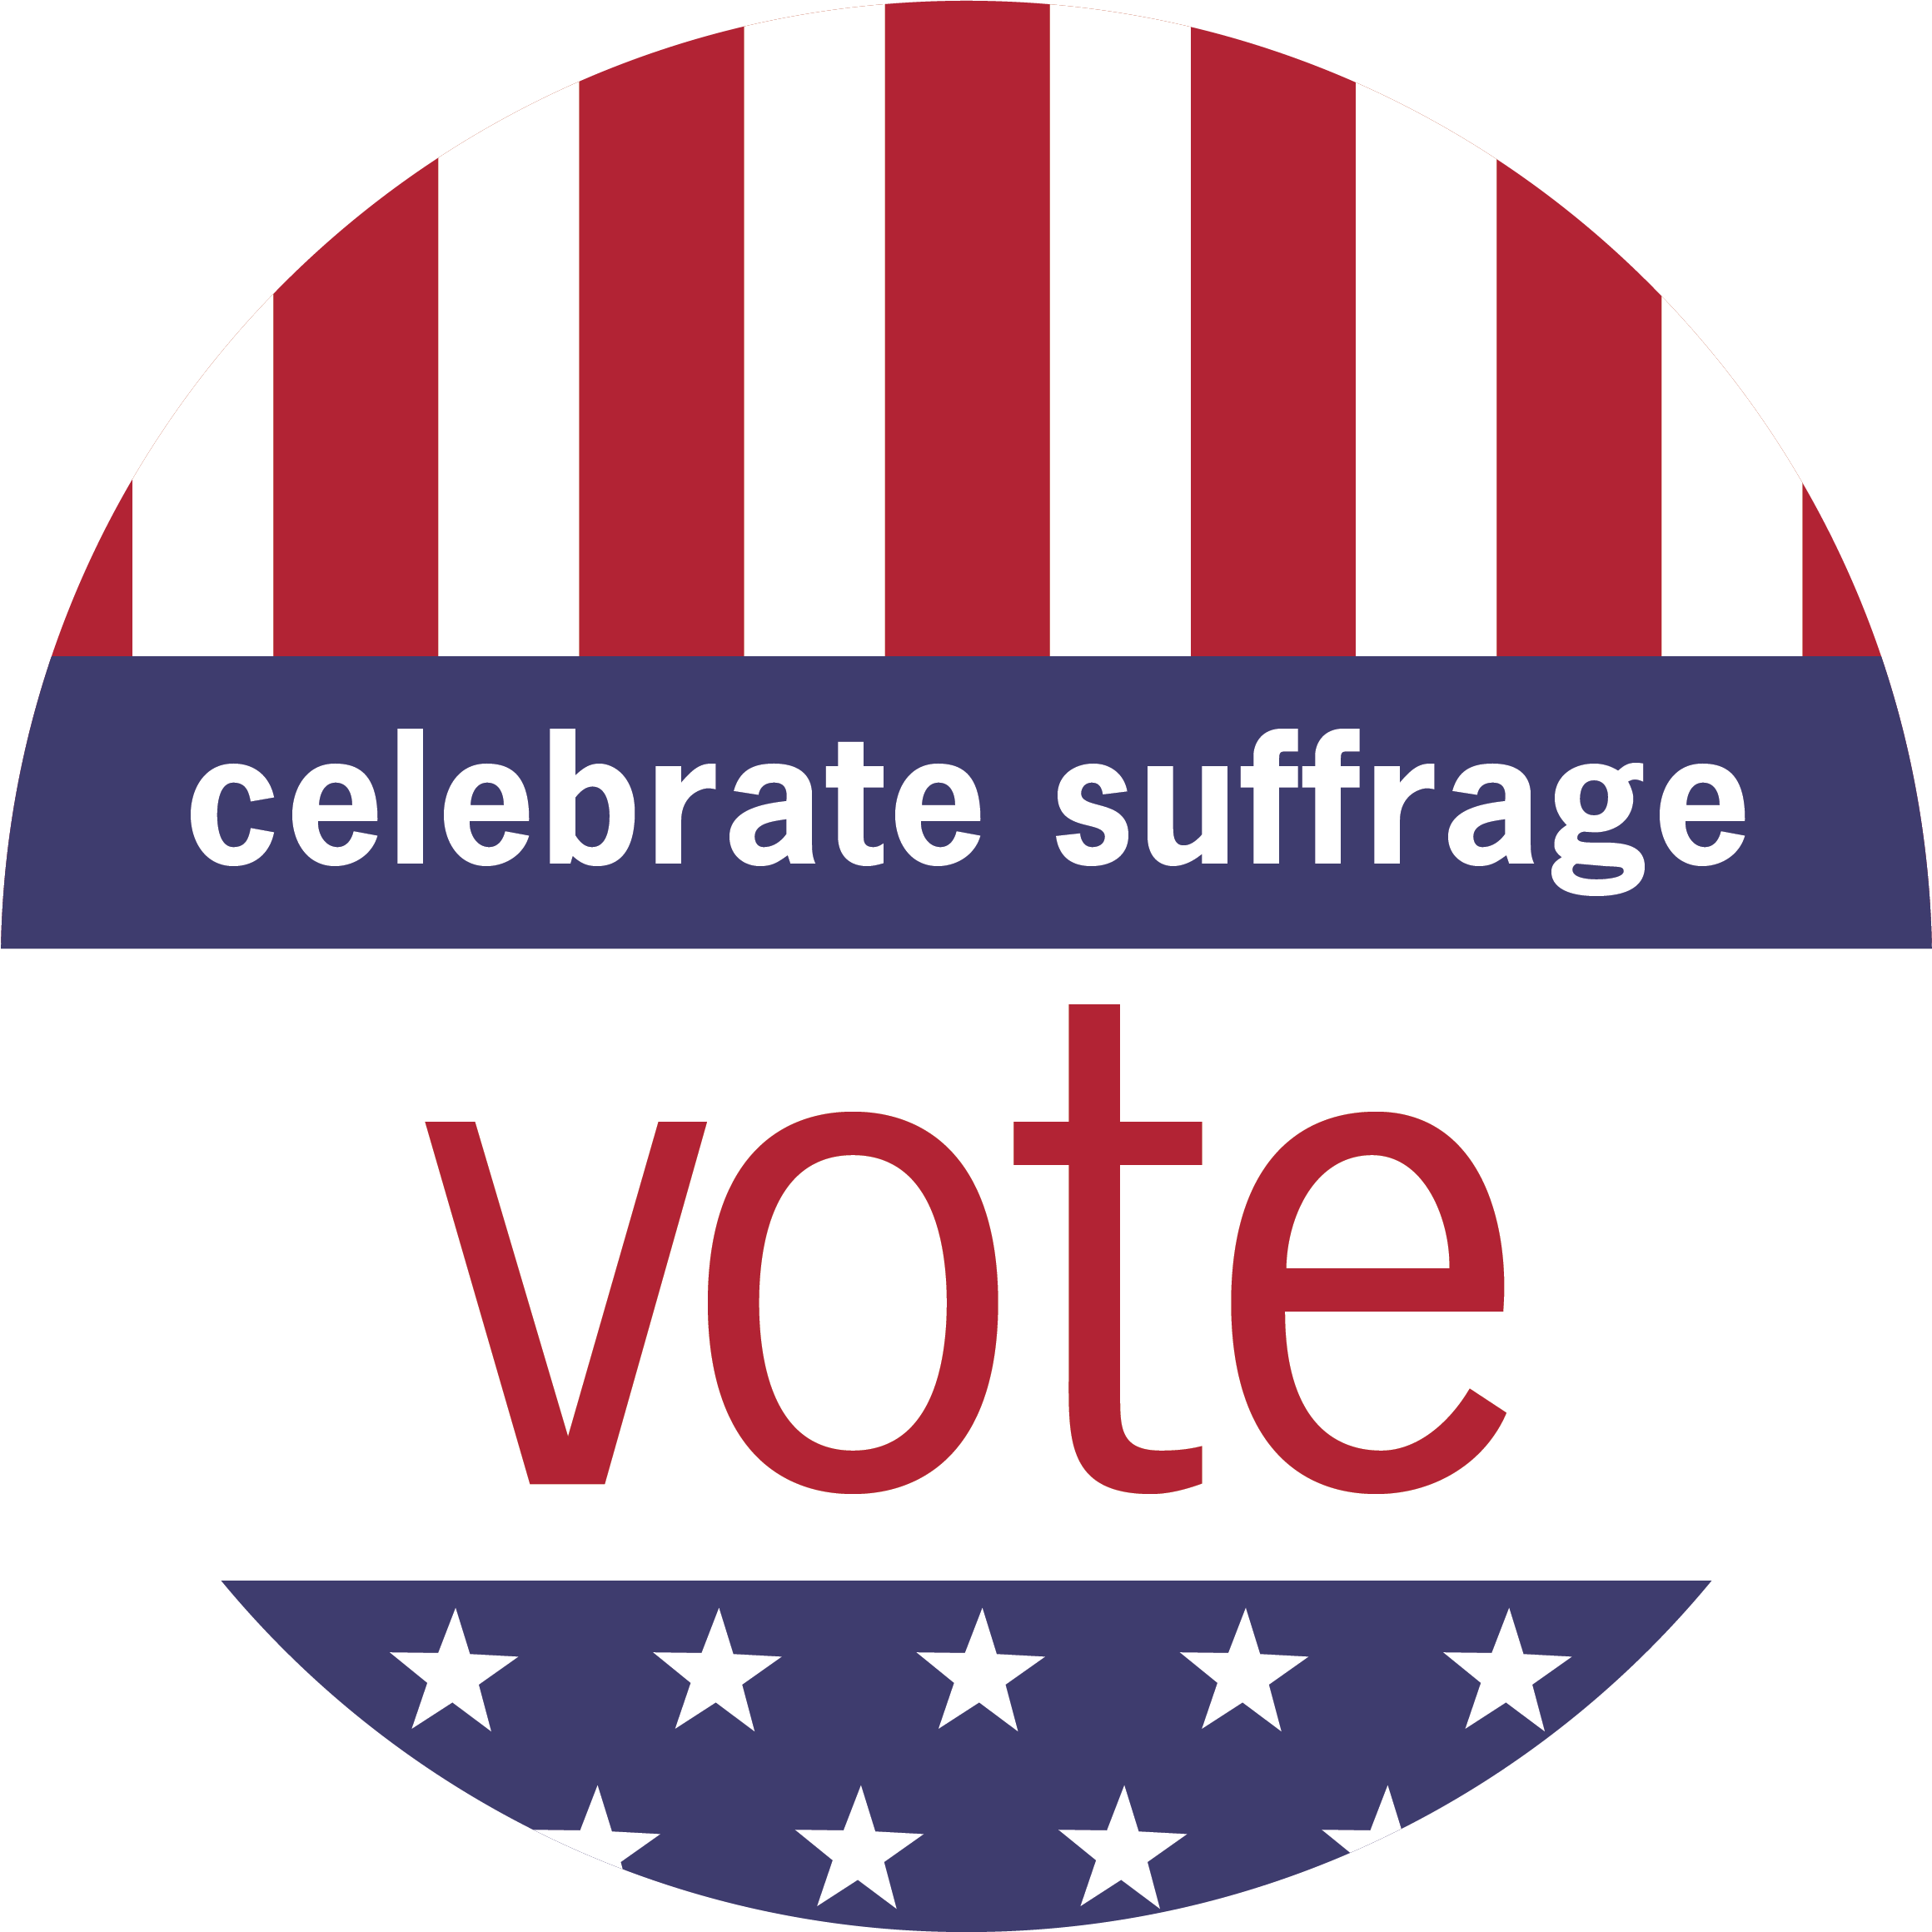 celebrate suffrage. vote.